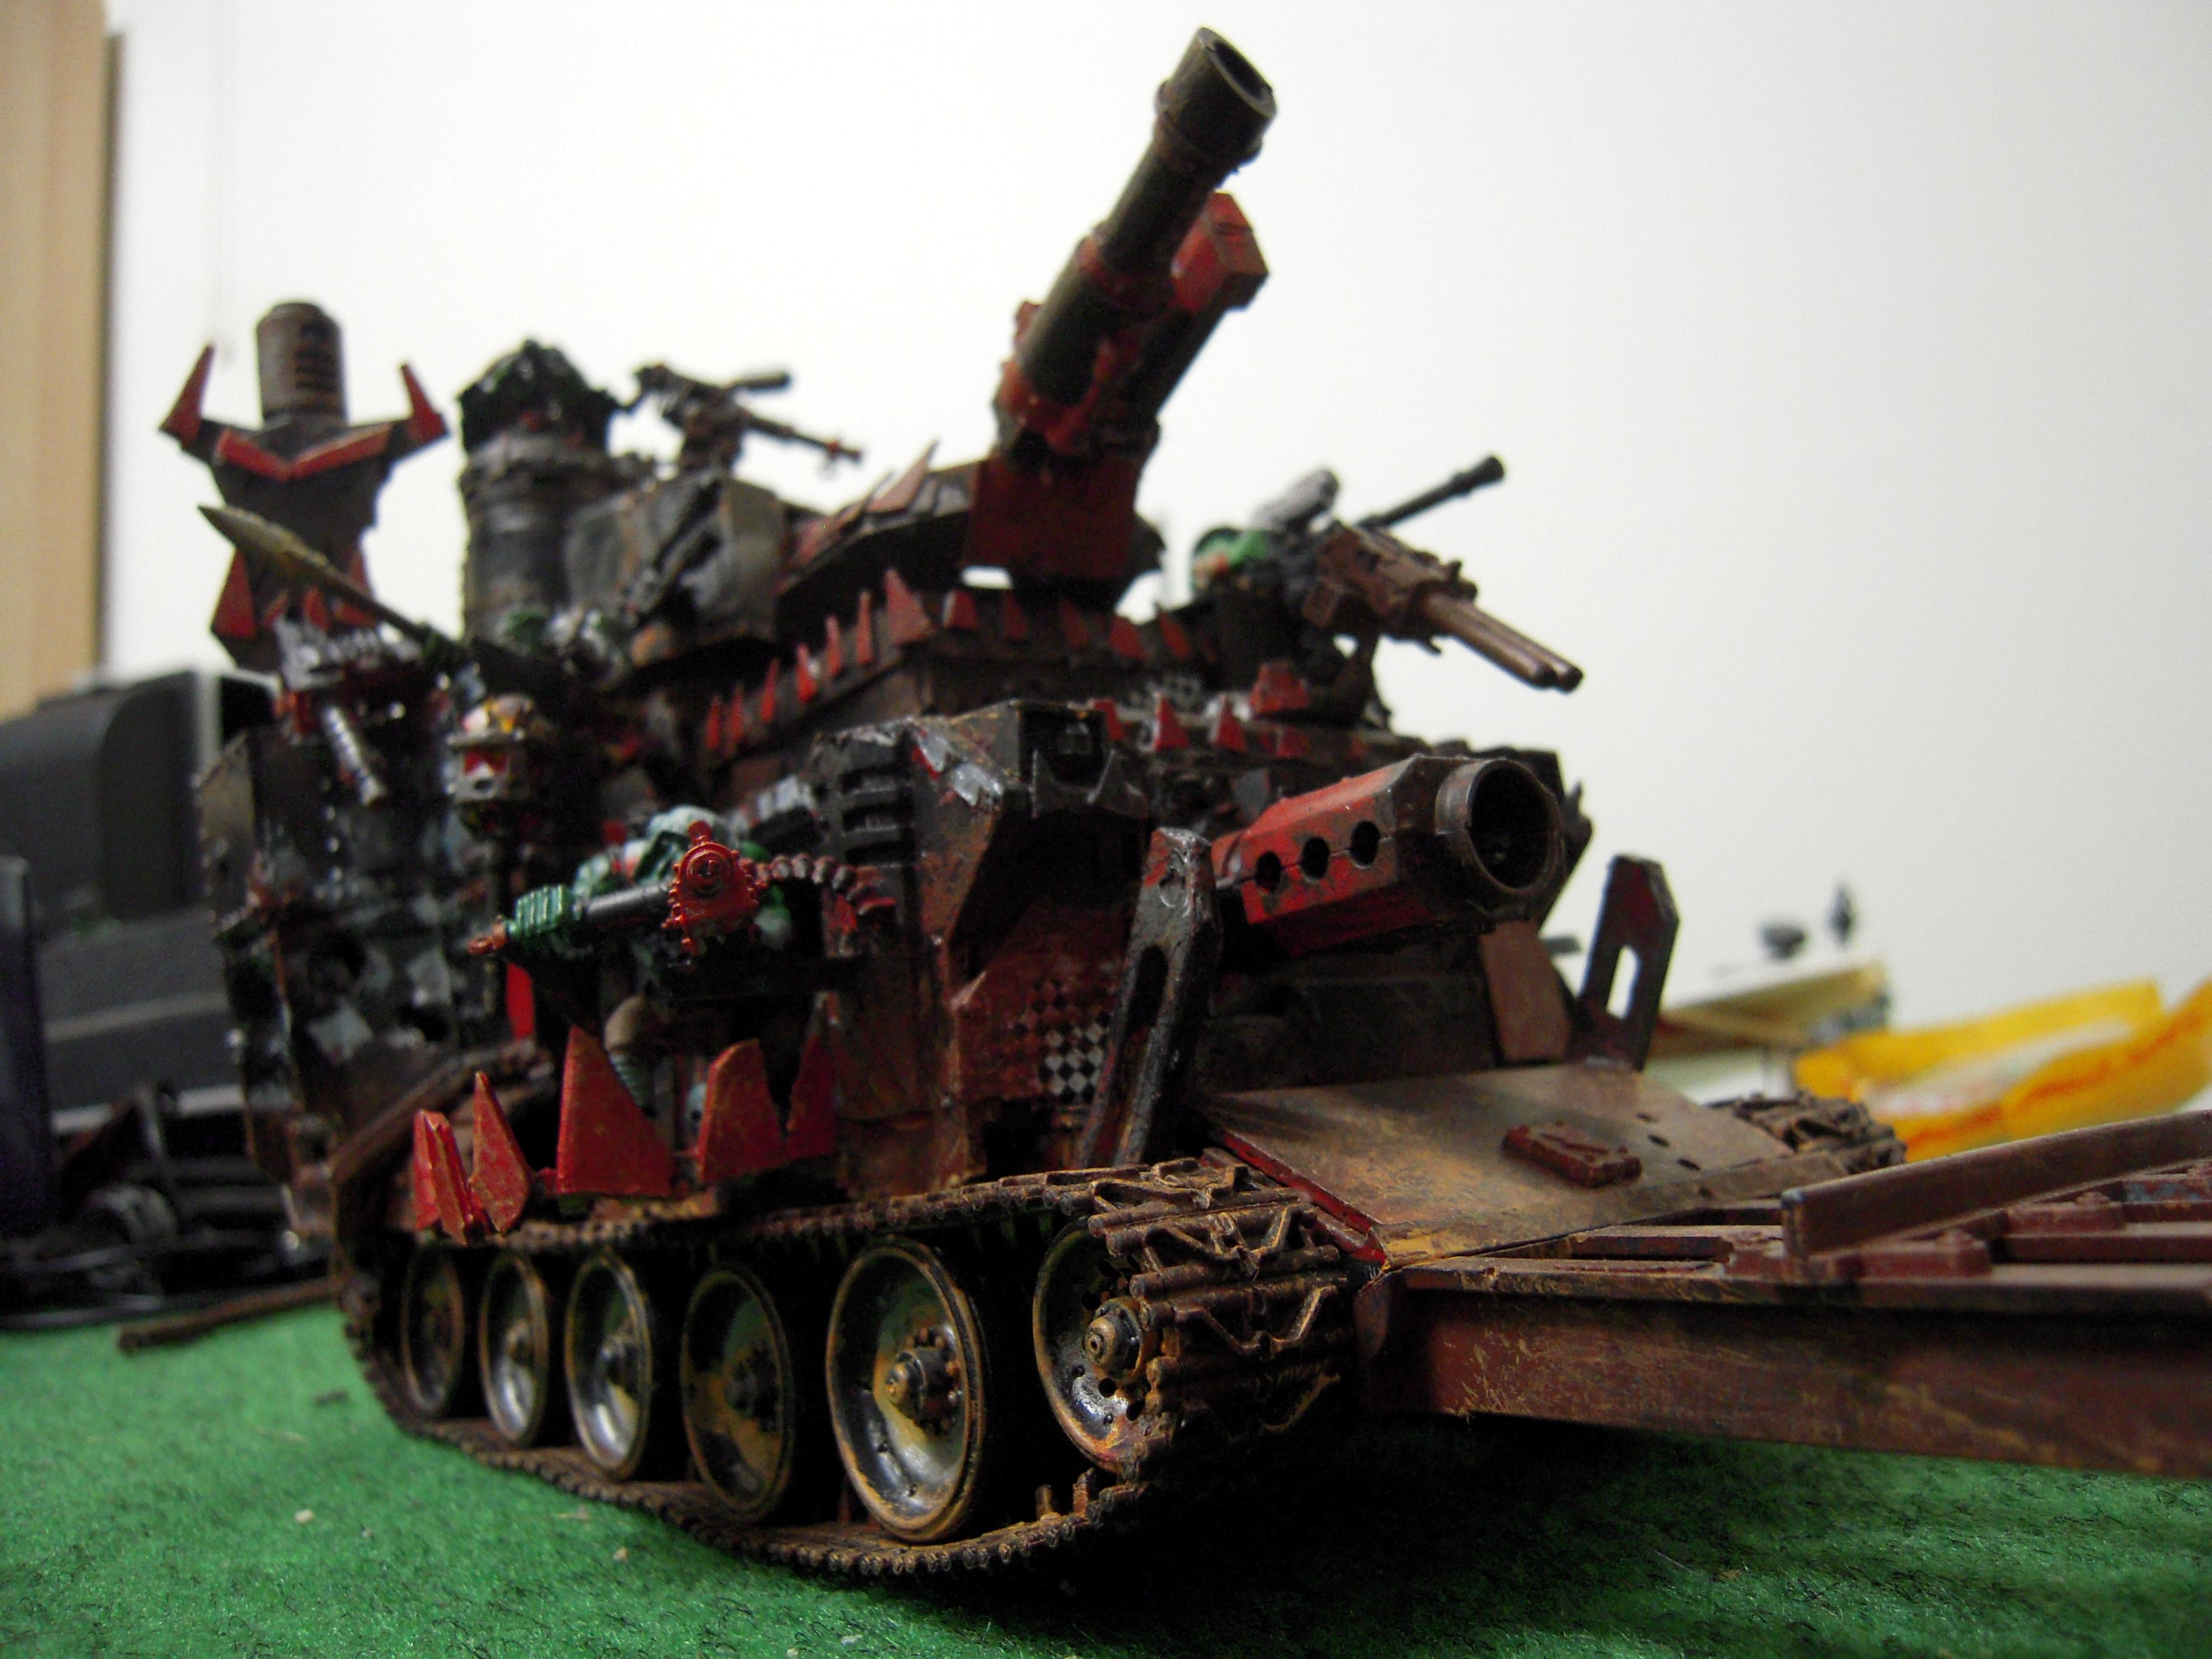 Apocalypse, Apocalypse Army, Battle, Battle Fortress, Battlewagon, Conversion, Goff, Heavy, Kannon, Looted, Looted Wagon, Massive, Orks, Rust, Rustic, Scratch Build, Super-heavy, Support, Tank, Warhammer 40,000